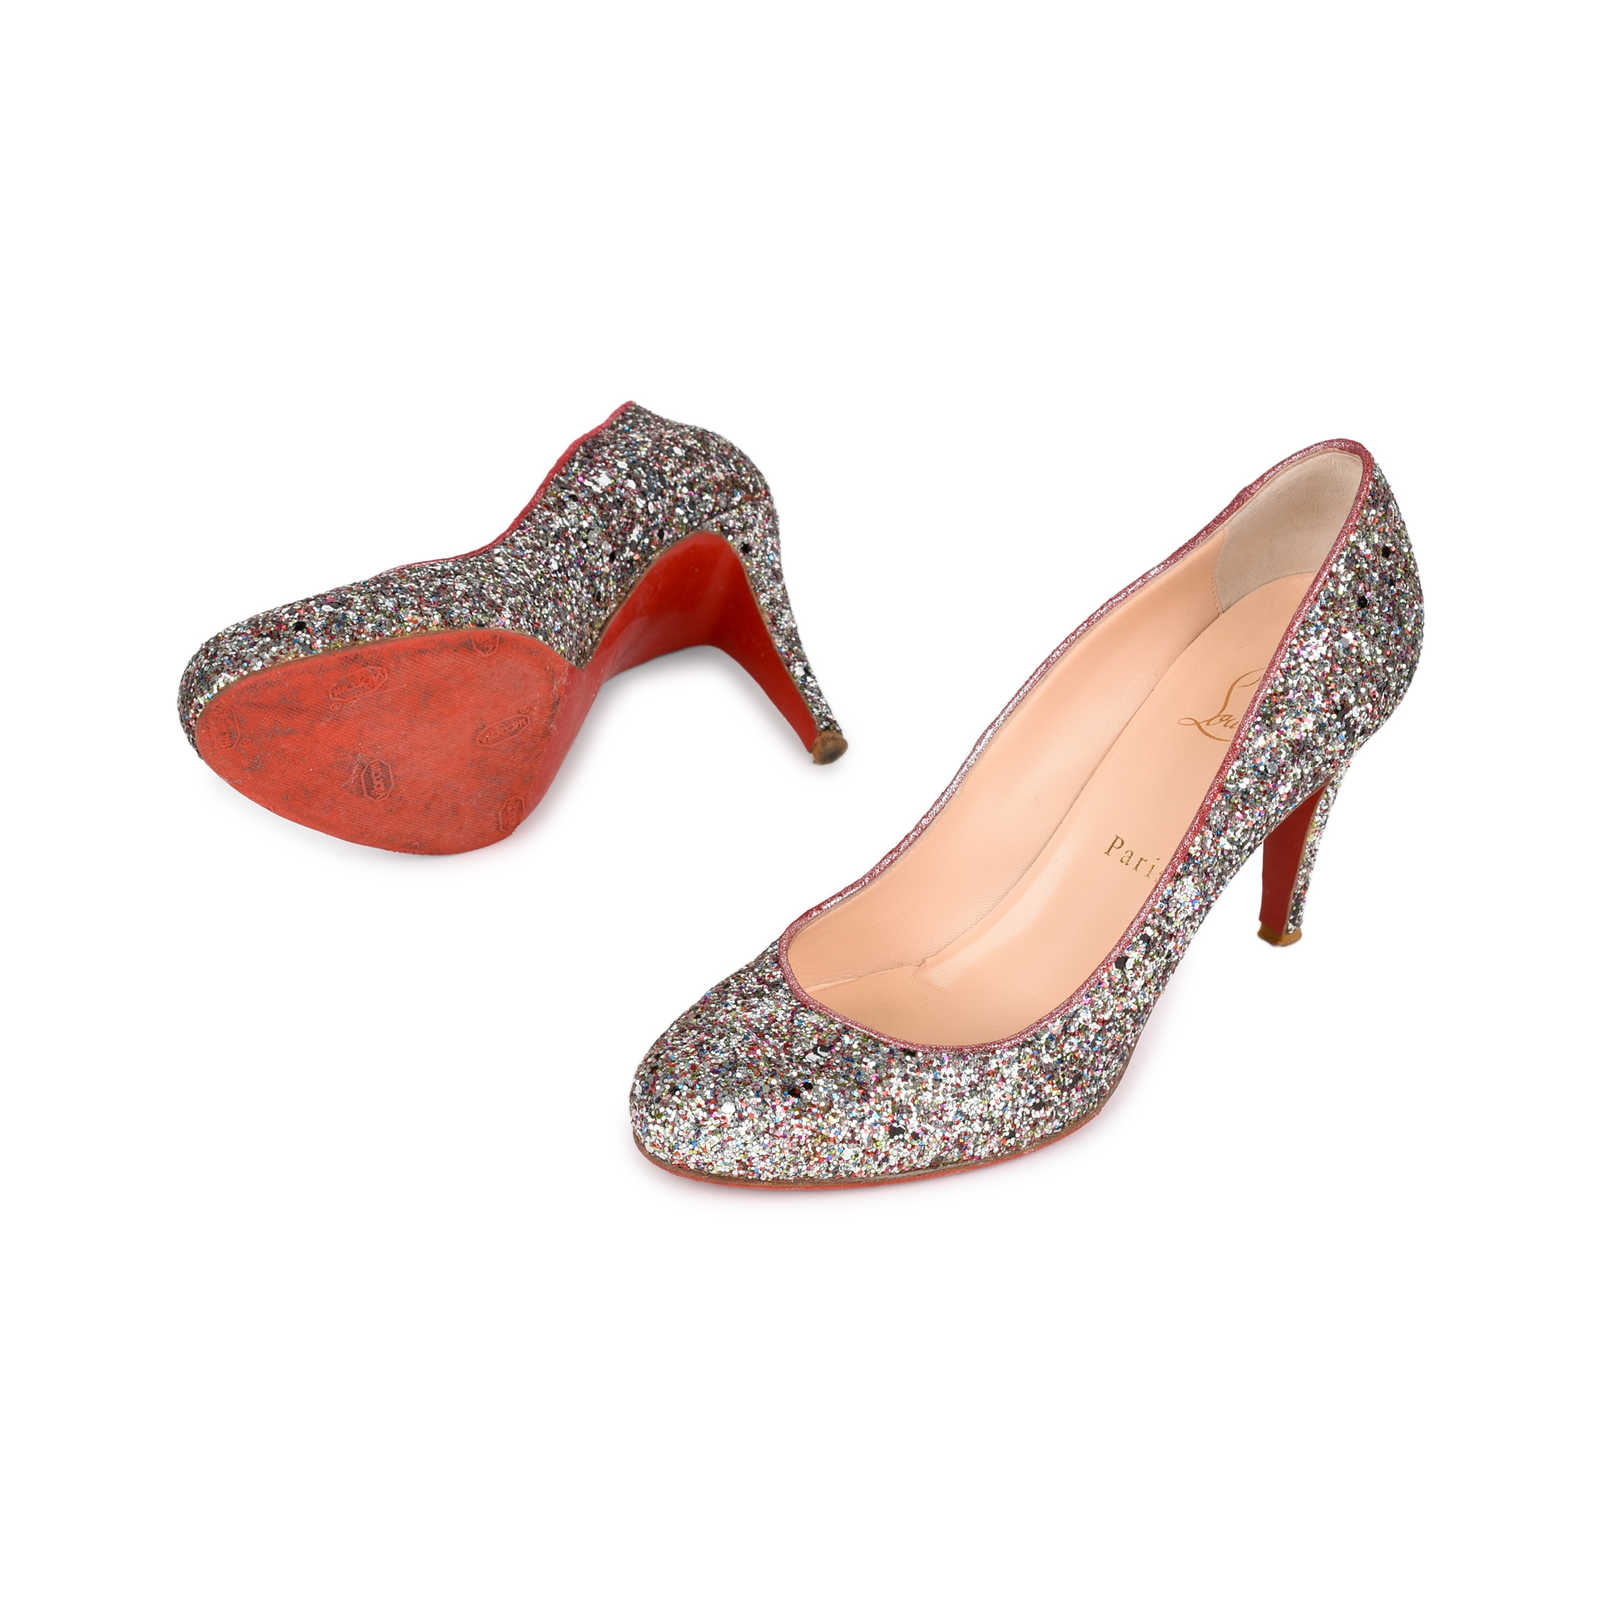 brand new 8efd4 44633 Authentic Second Hand Christian Louboutin Glitter Ron Ron 85 ...